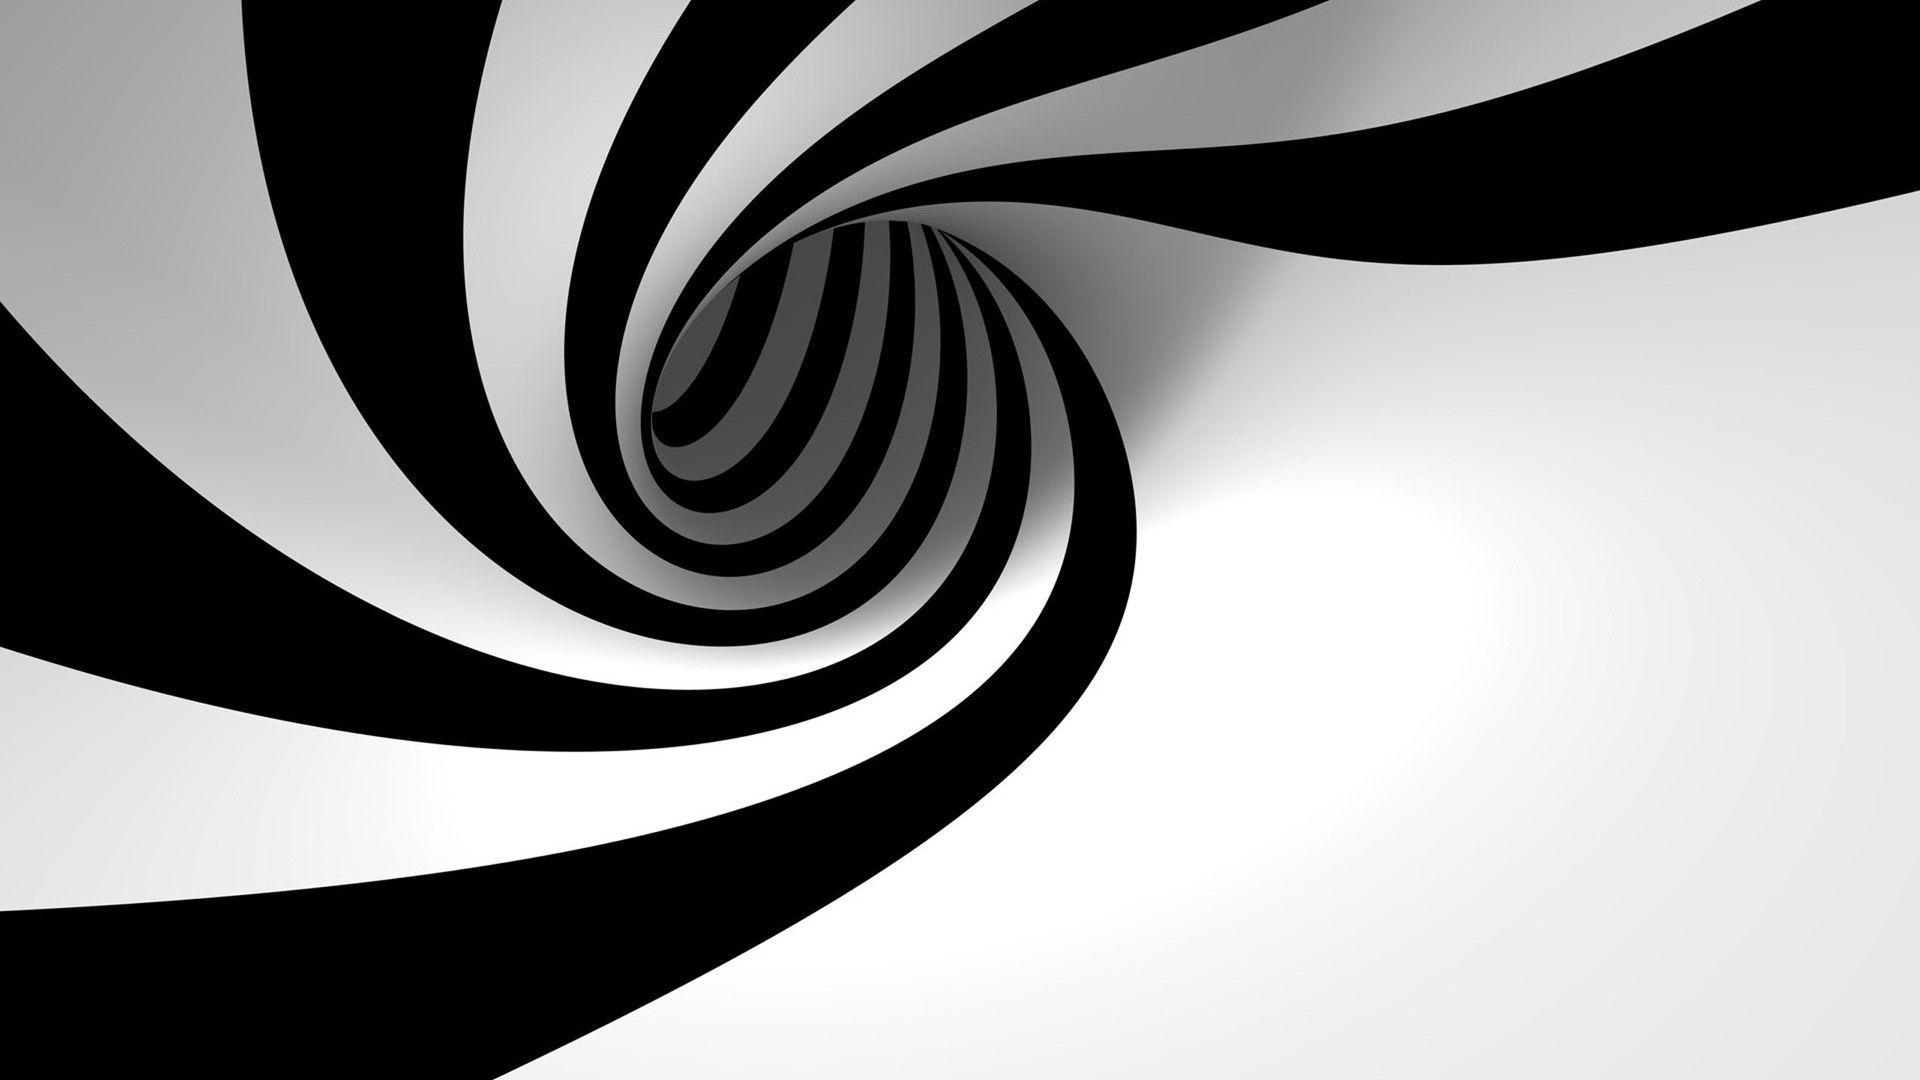 Black And White Swirl Abstract Wallpaper Black And White